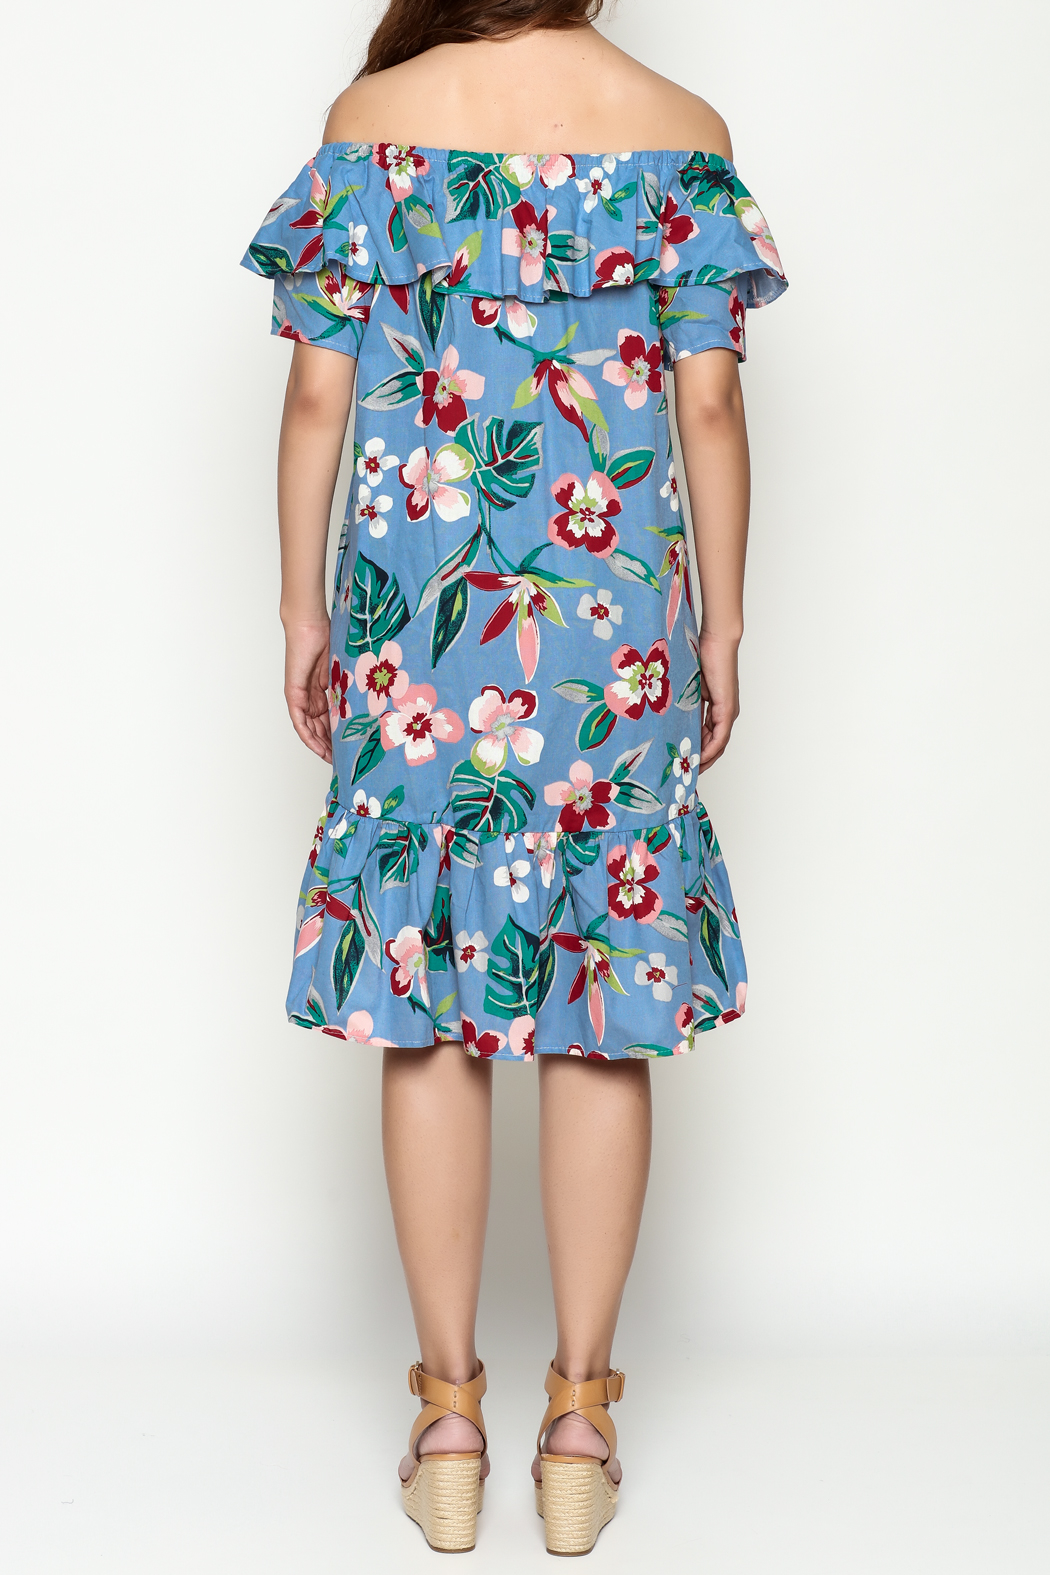 THINK CLOSET Flirty floral dress - Back Cropped Image